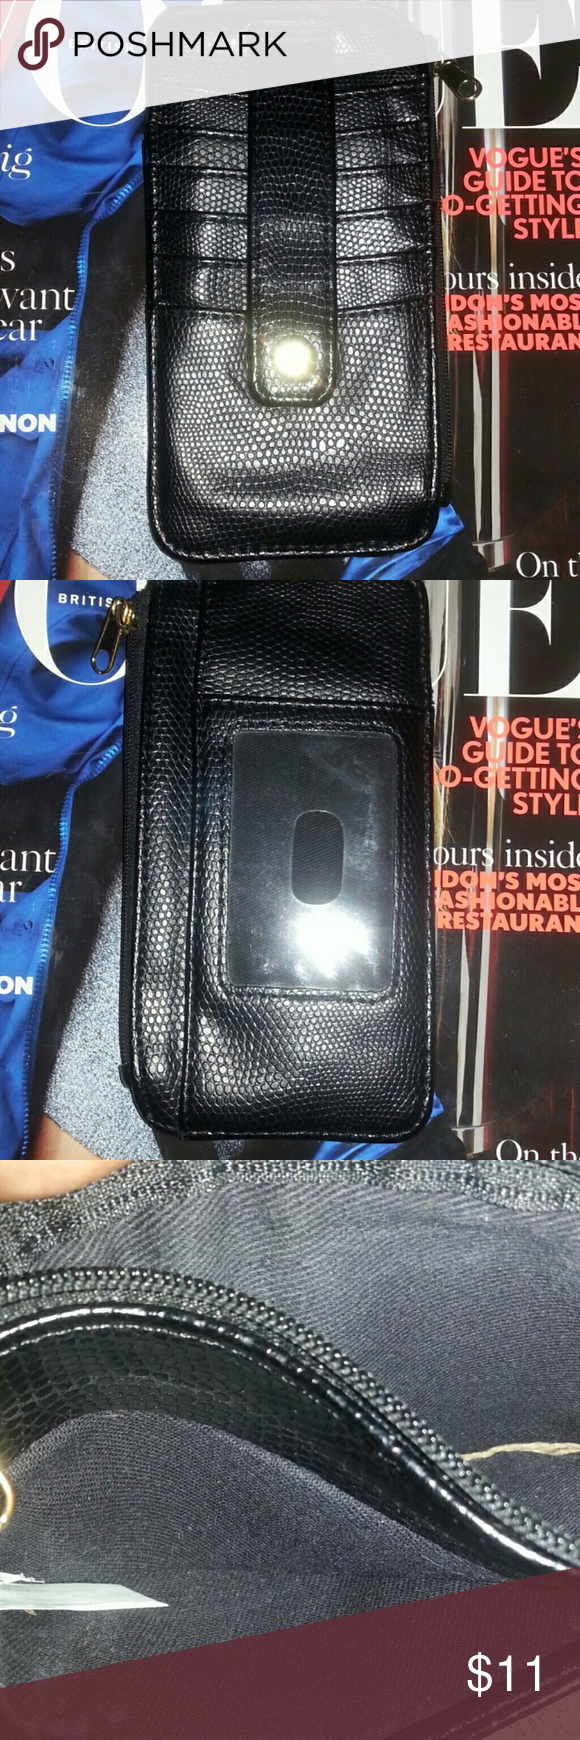 """New Merchant Wallet Faux Crocodile leather. Six slots for cards/credit cards and a slot for an ID card. One zipper slot for change or receipts and a mini slot behind the ID card area. Great for a night out - holds cash cards keys ID. Perfect addition to your larger purse/Bag. H""""3.5xW""""6.5 New Merchant  Accessories Key & Card Holders"""